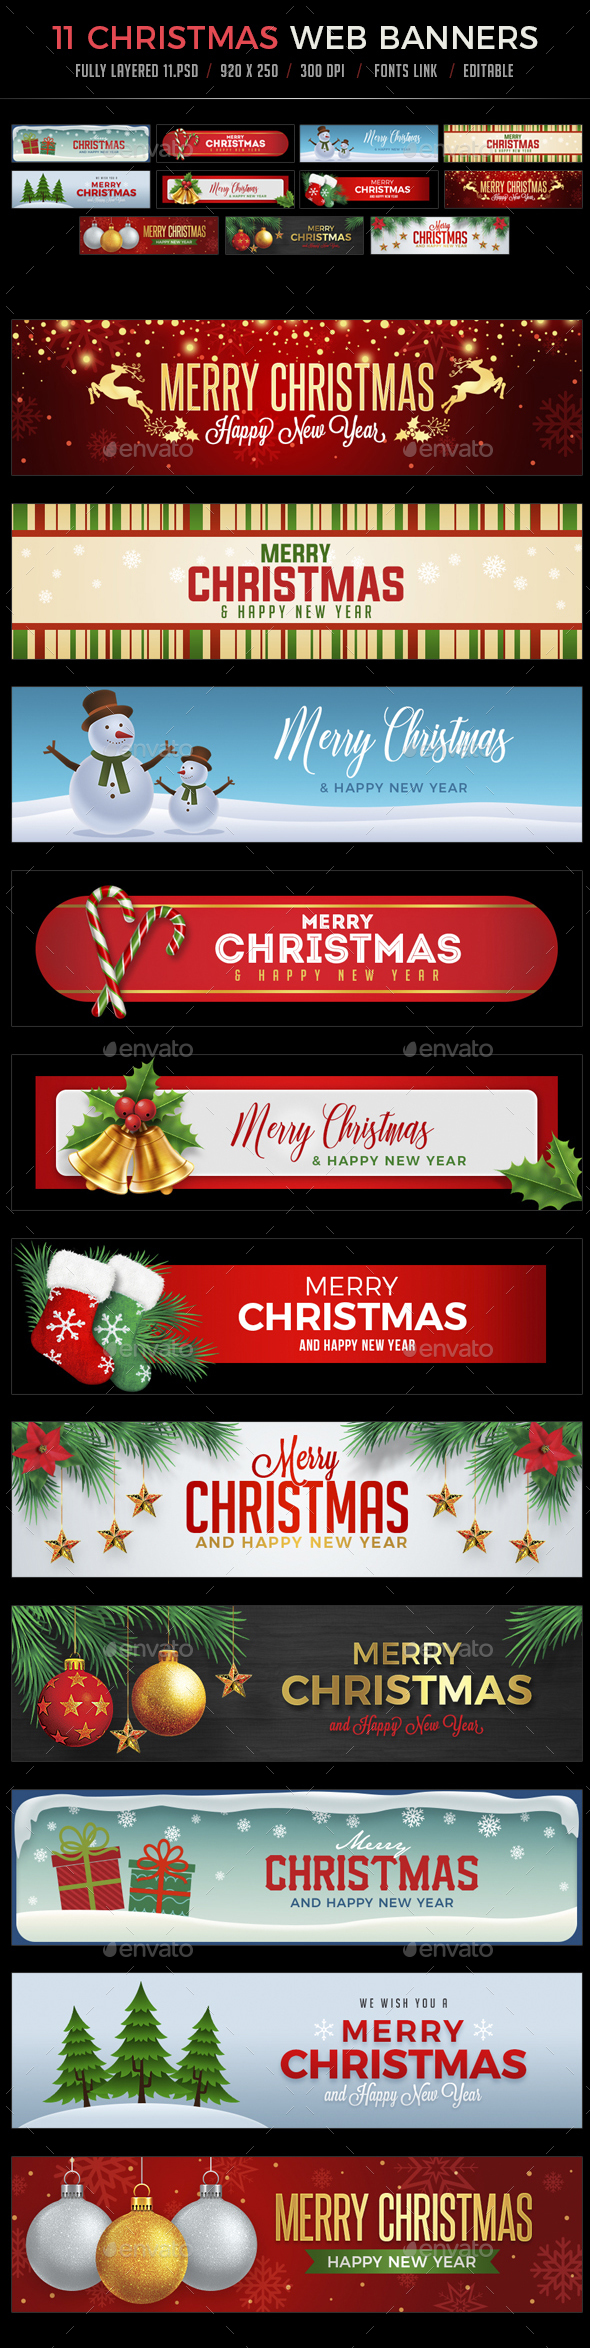 11 Christmas Web Banners - Banners & Ads Web Elements